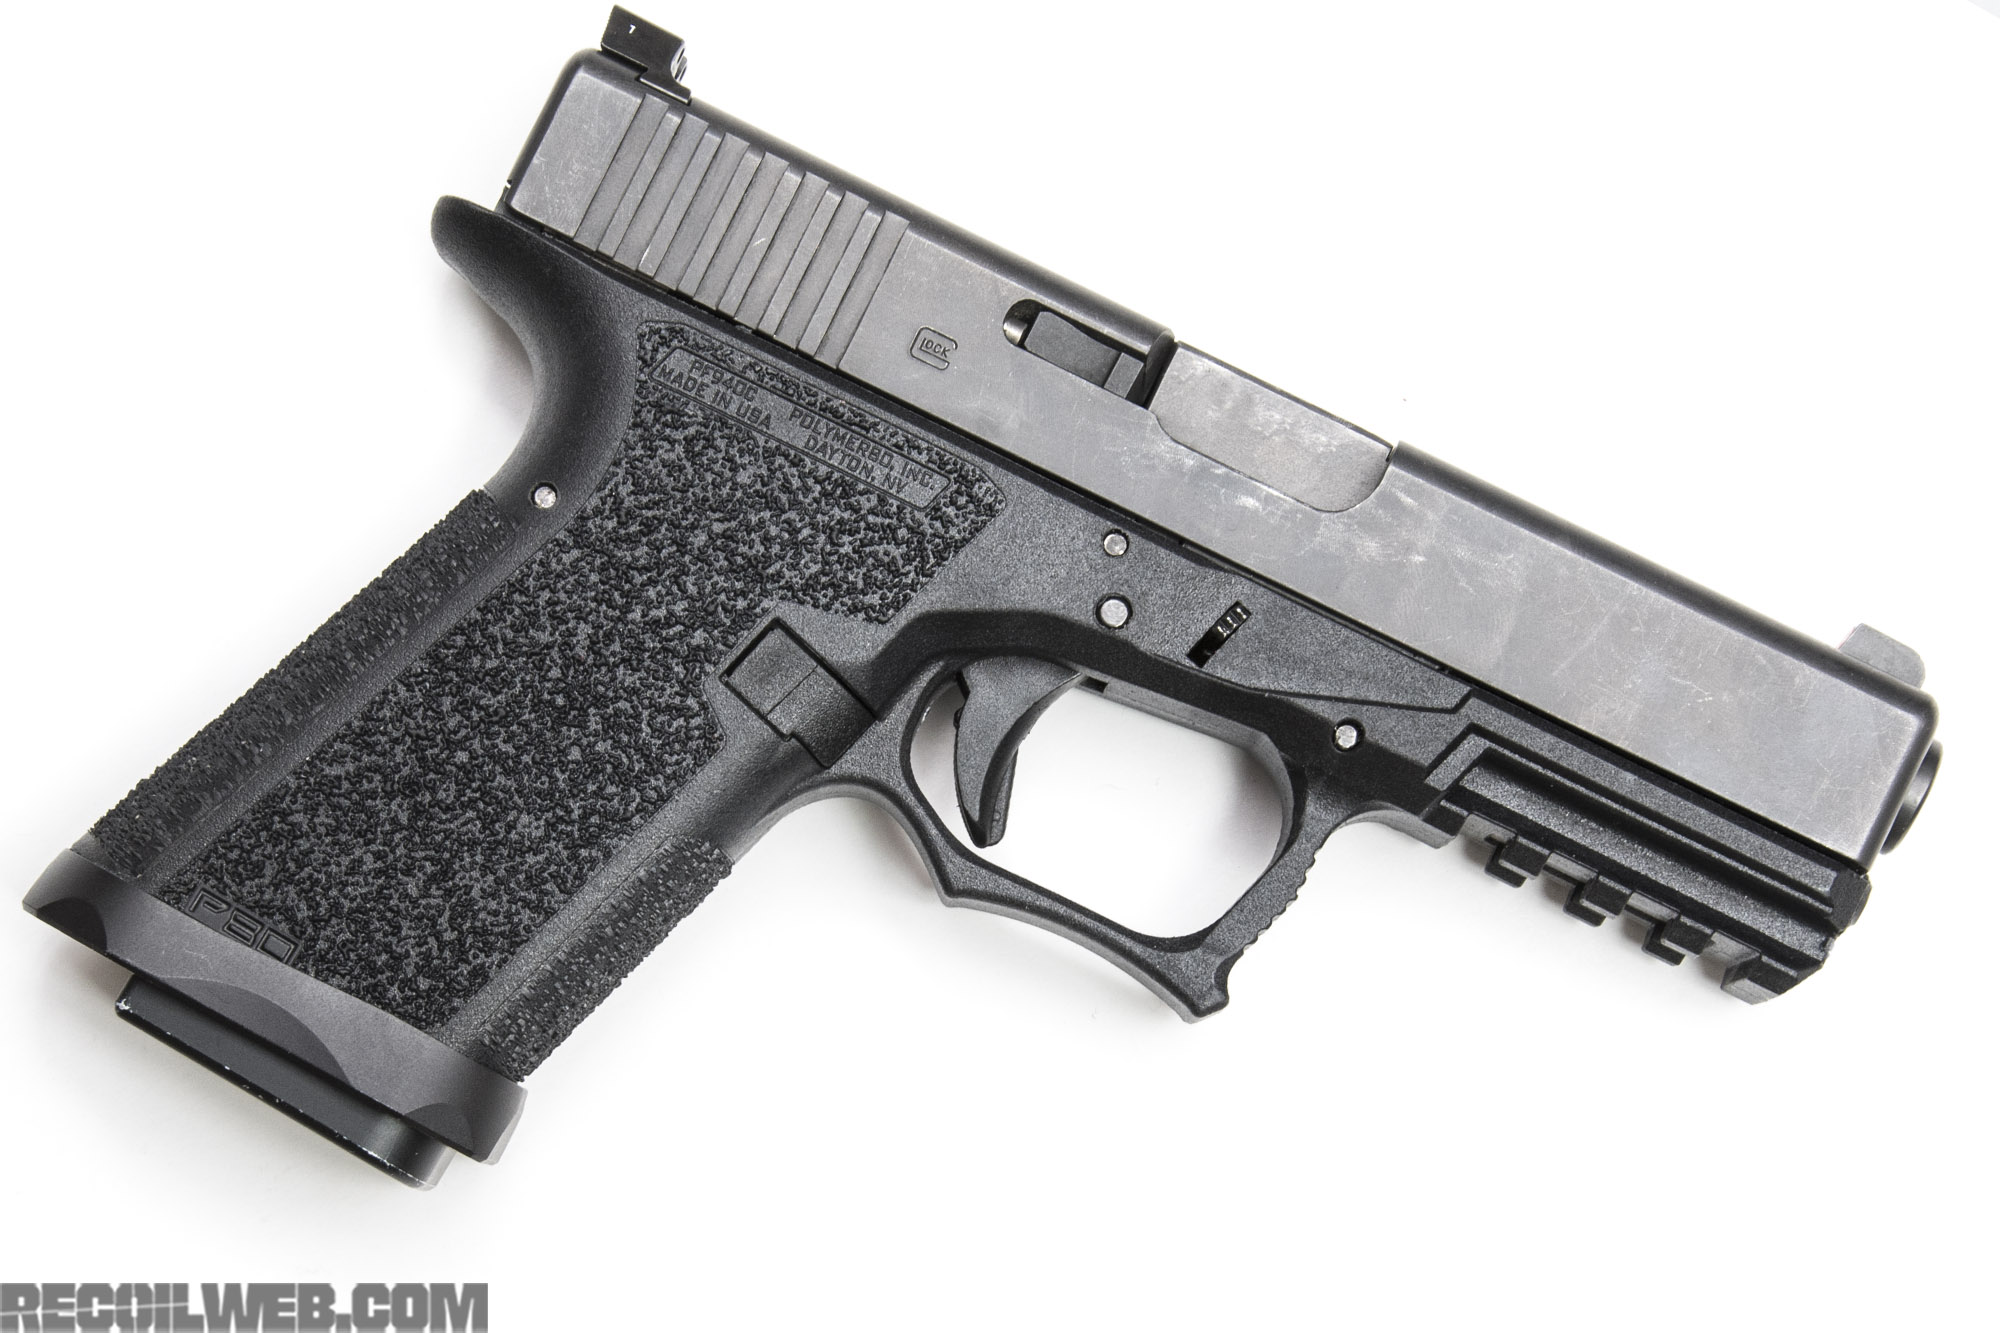 Some Assembly Required: PF940Cv1 80% Compact Glock Frame | RECOIL